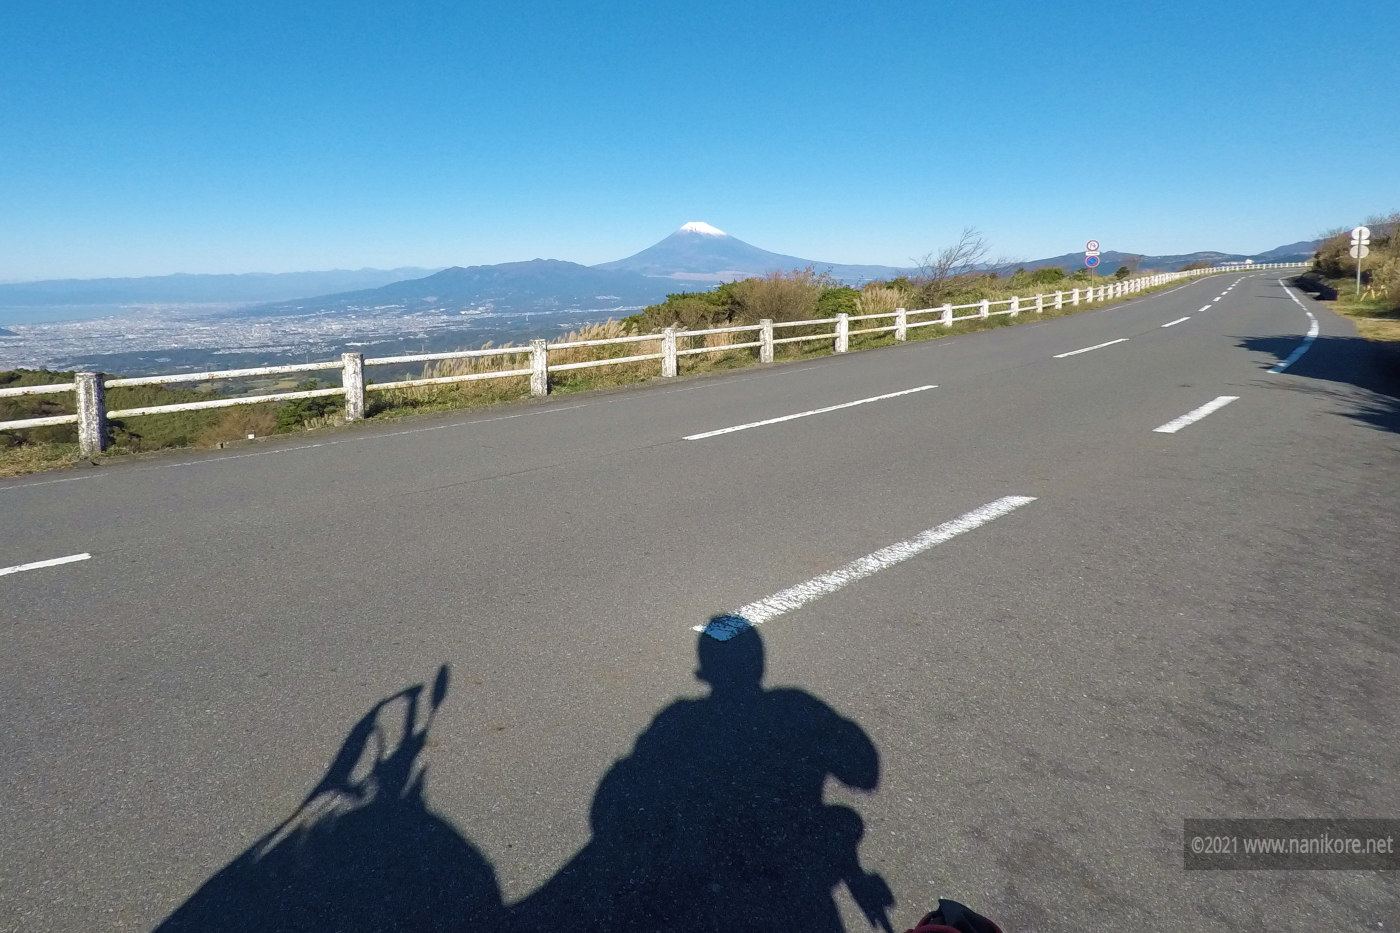 View of Fuji from the bike at Kurodake